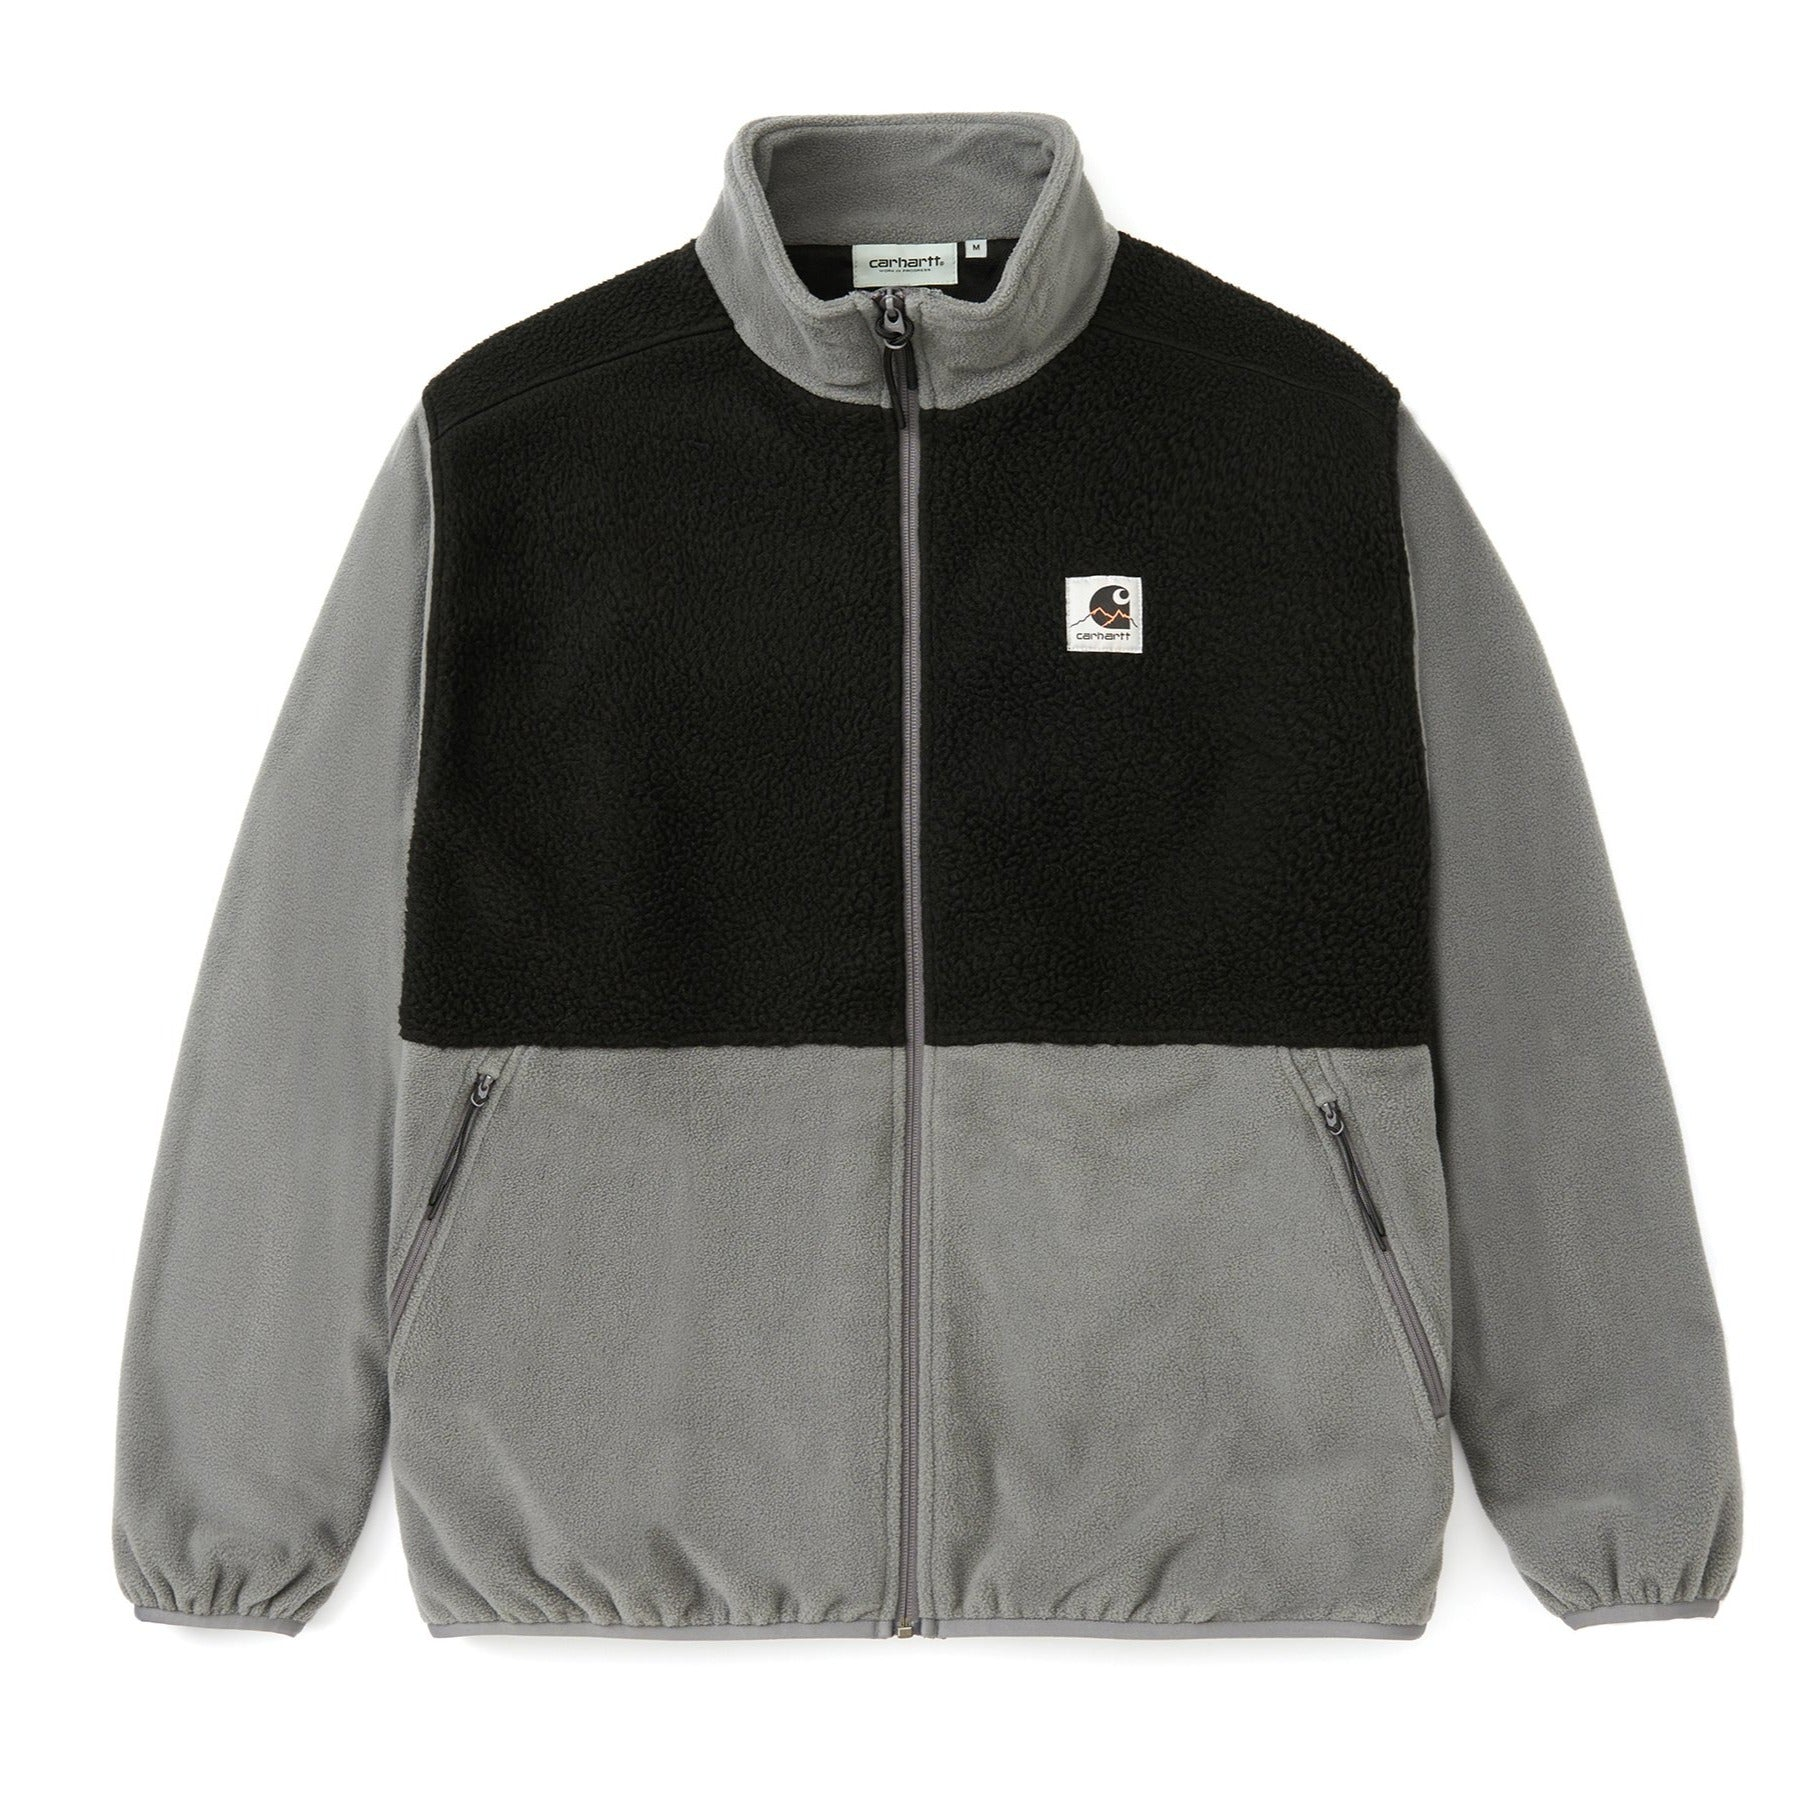 Outdoor C Jacket